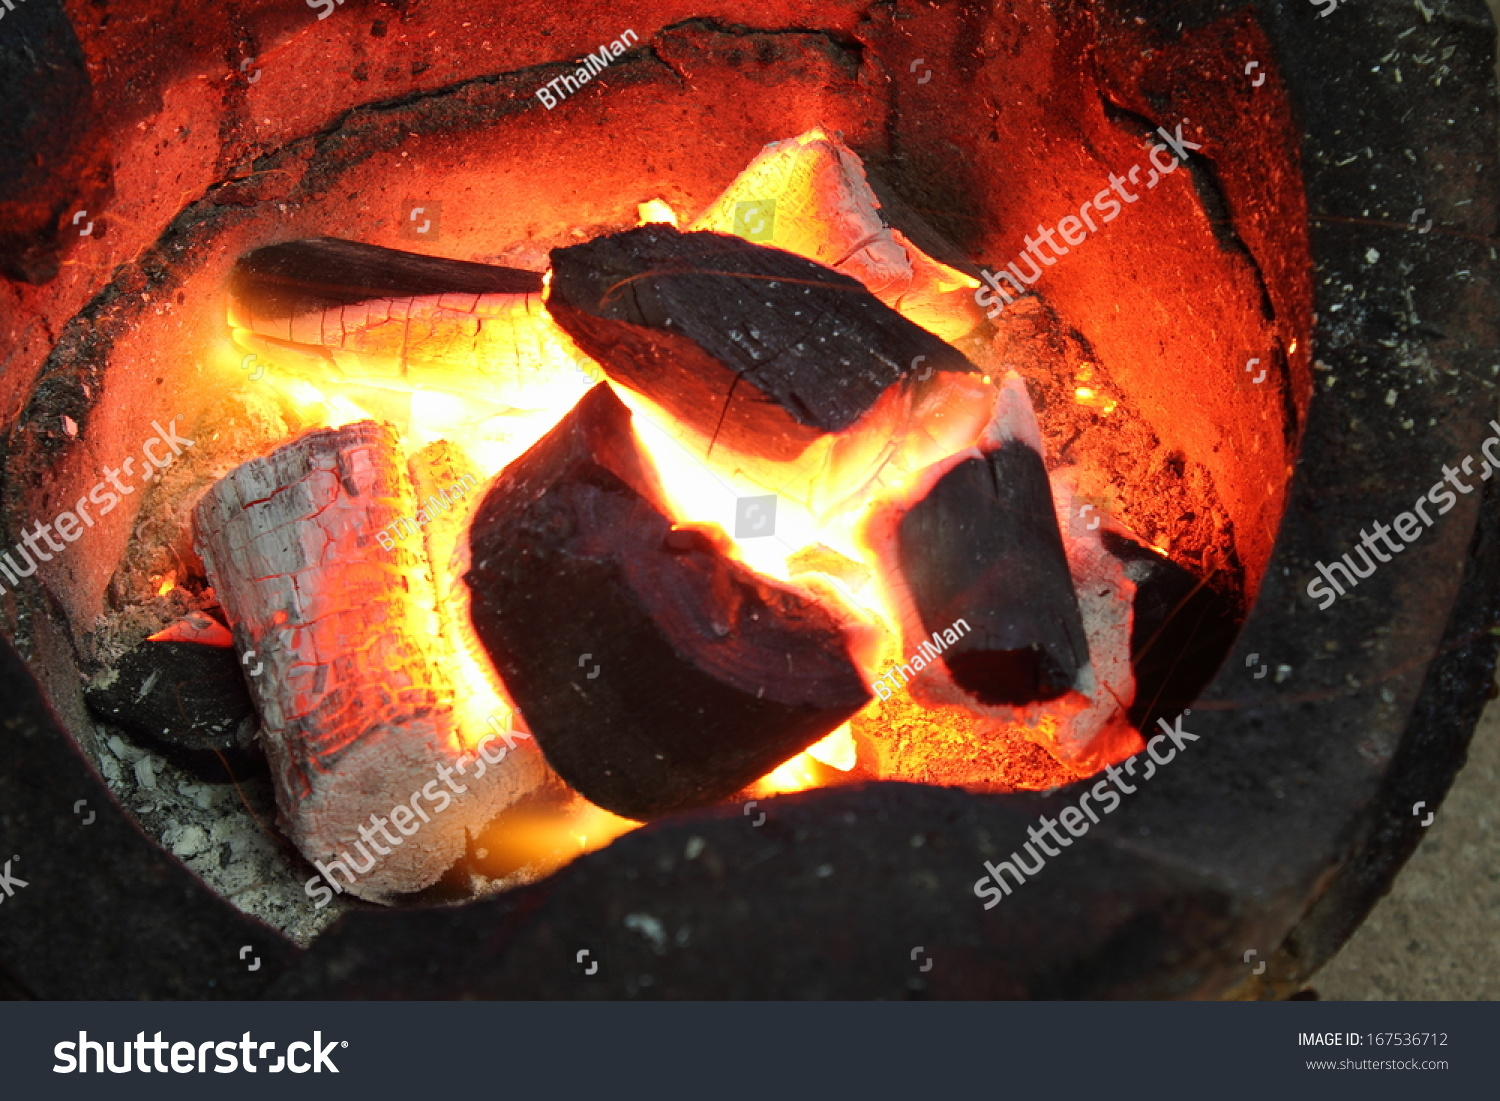 fire coals in the stove #167536712